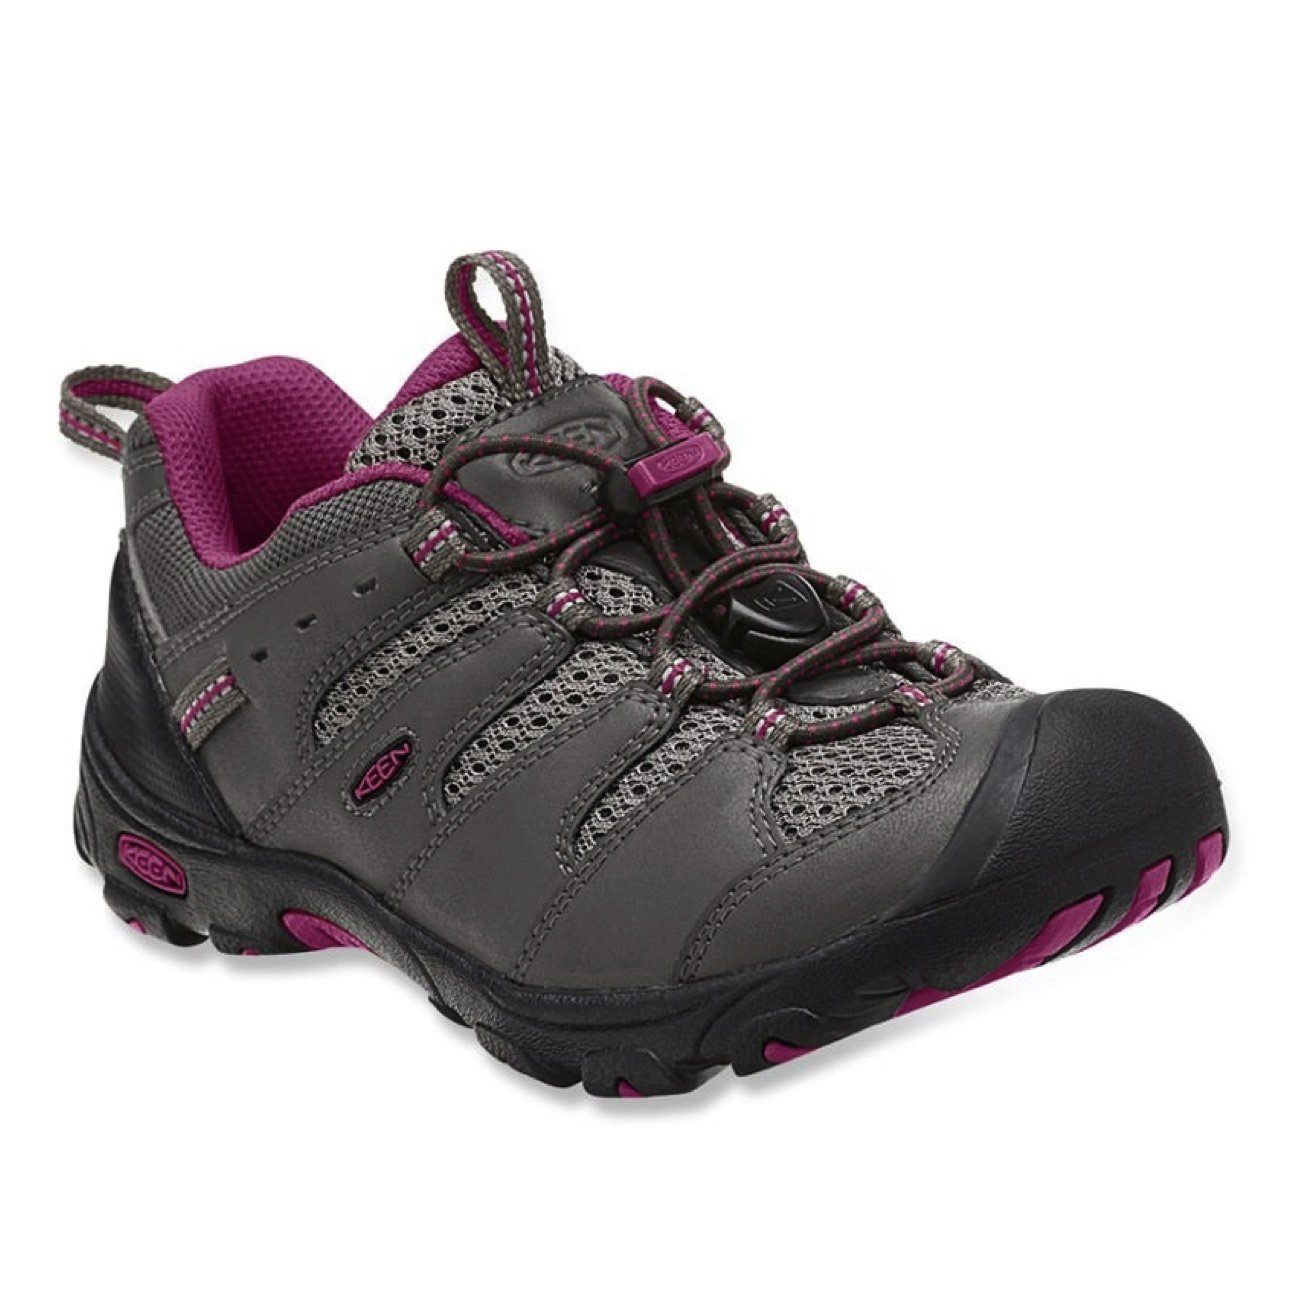 Keen Kids, Koven Low WP, CHILDREN, Medium Fit, Waterproof, Leather/Mesh Upper Kids Footwear Keen Magnet/Cerise 8